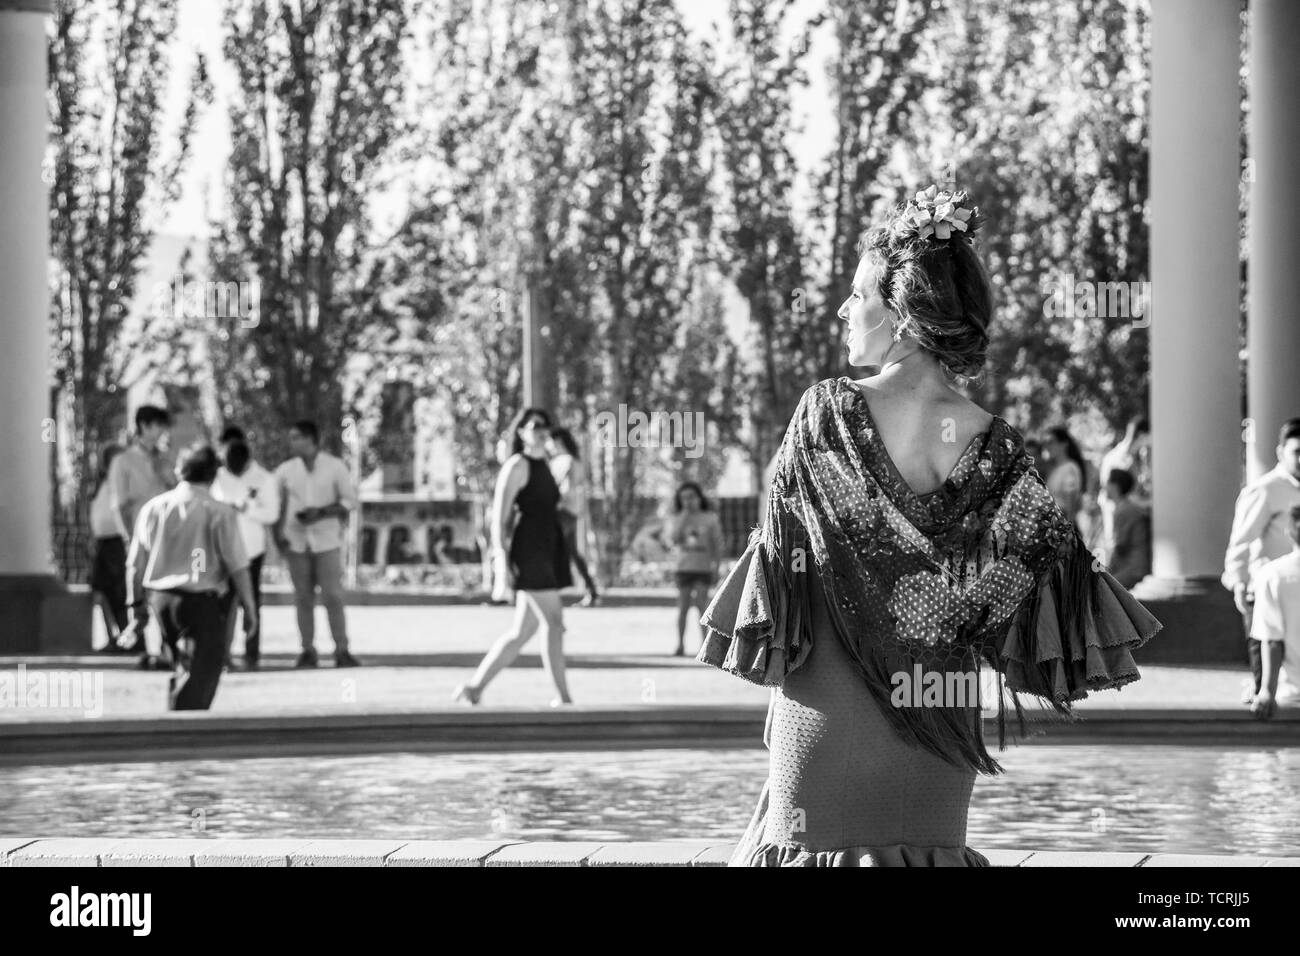 CORDOBA, SPAIN - MAY 30, 2019: Beautiful dressed female participant at Feria de Cordoba, Feria de Nuestra Senora de la Salud or Cordoba Fair, black an Stock Photo